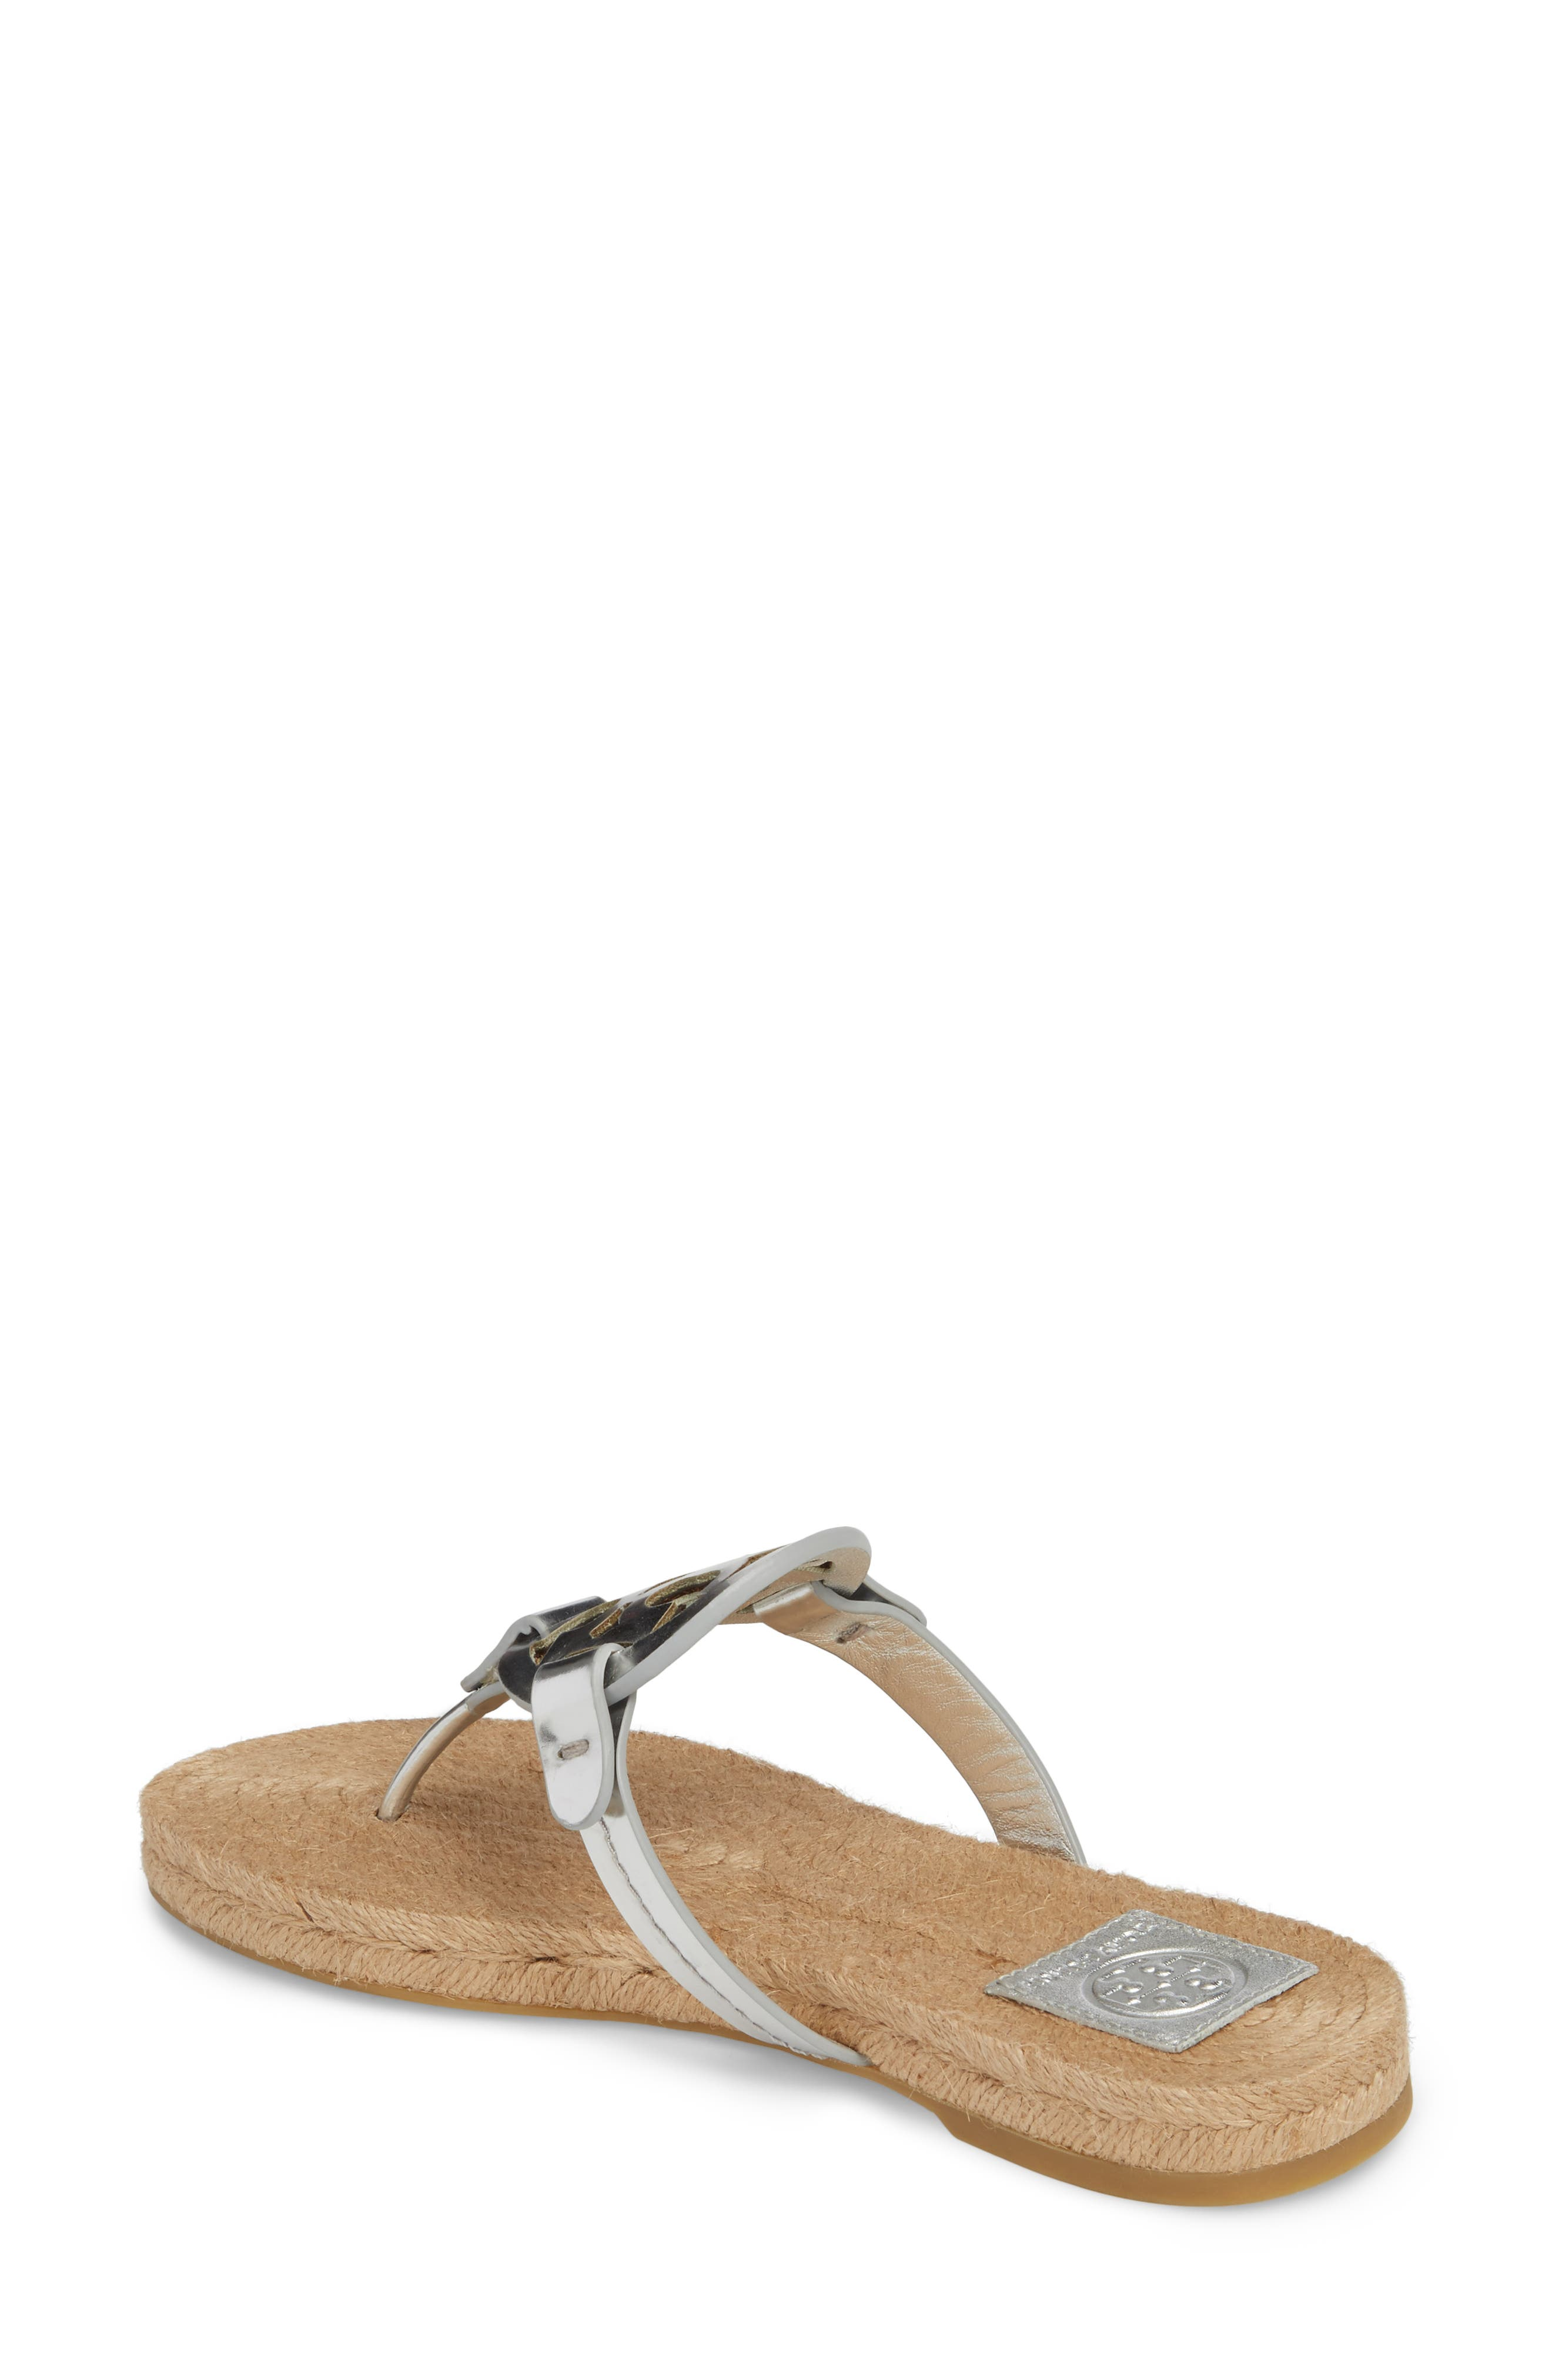 Alternate Image 2  - Tory Burch Miller Espadrille Sandal (Women)